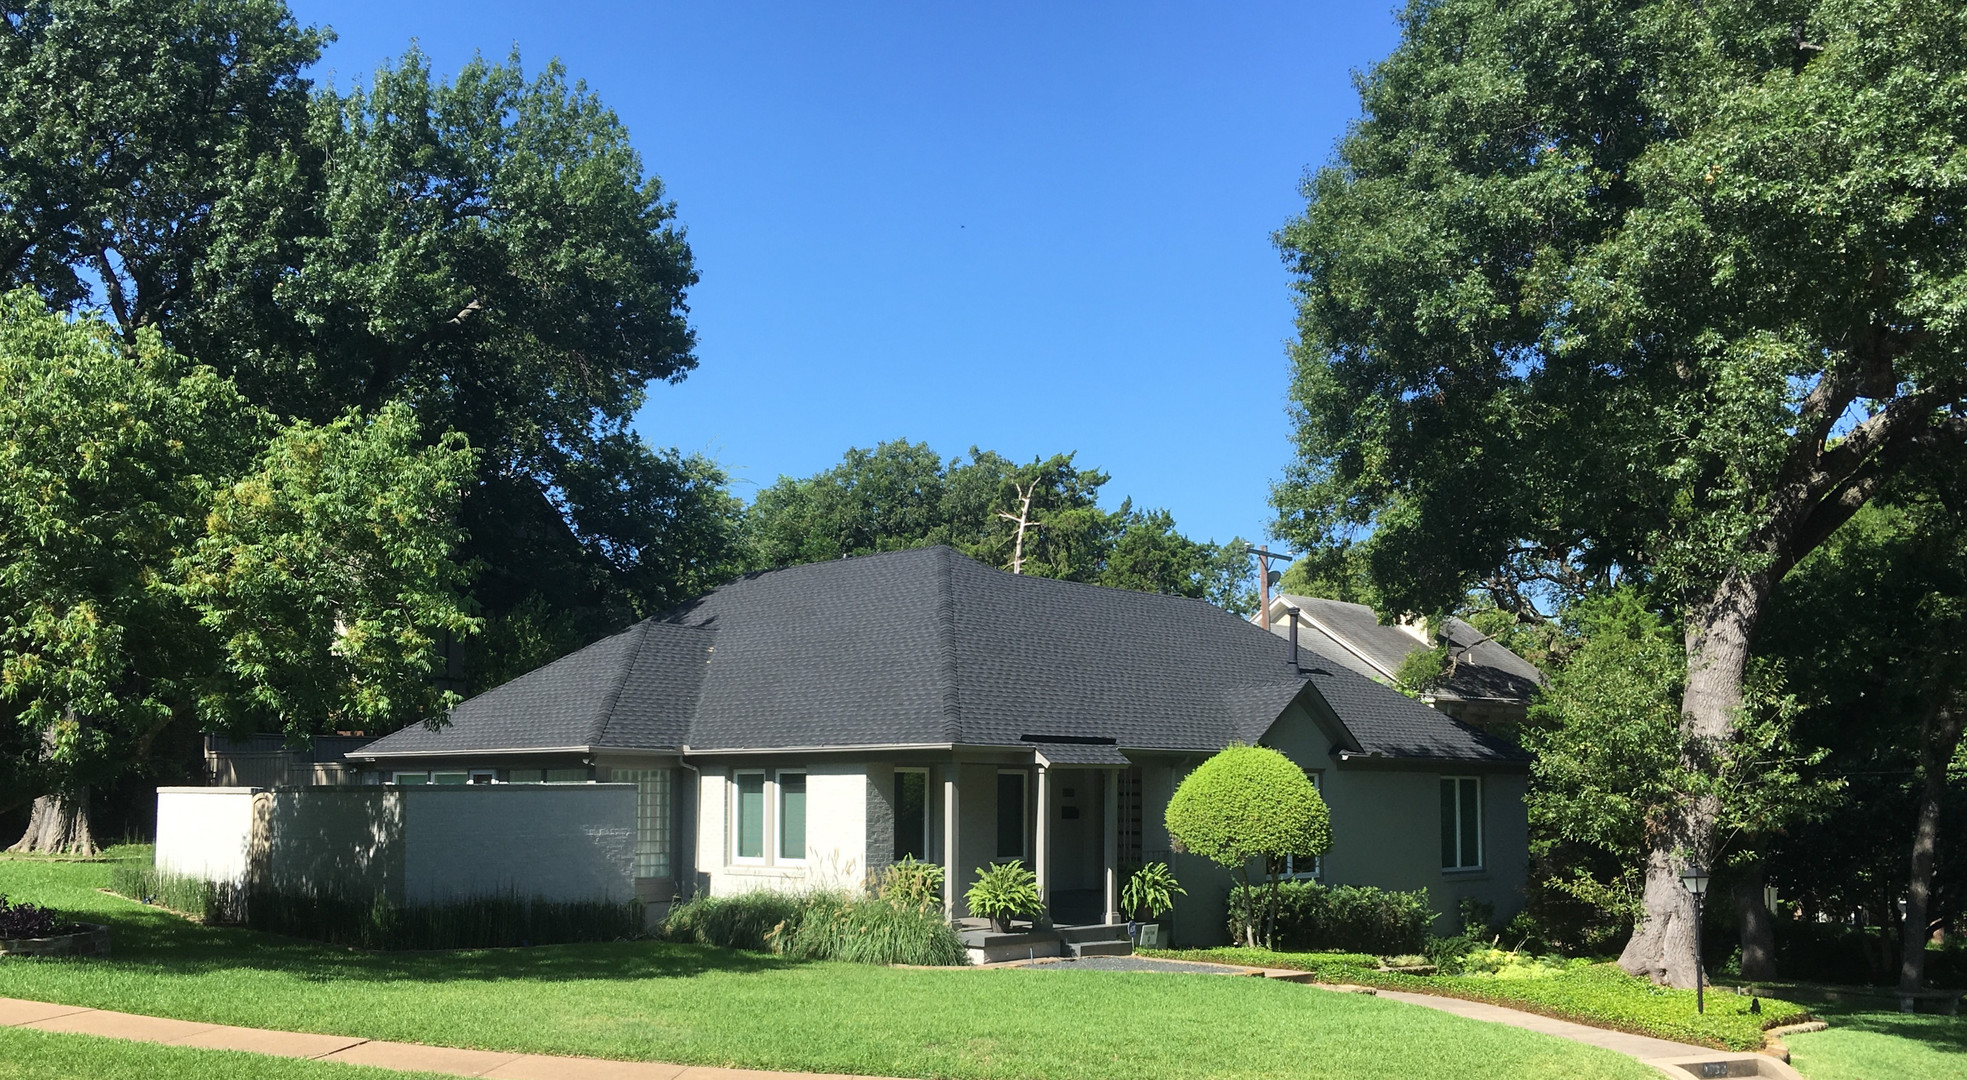 New roof & New Palette